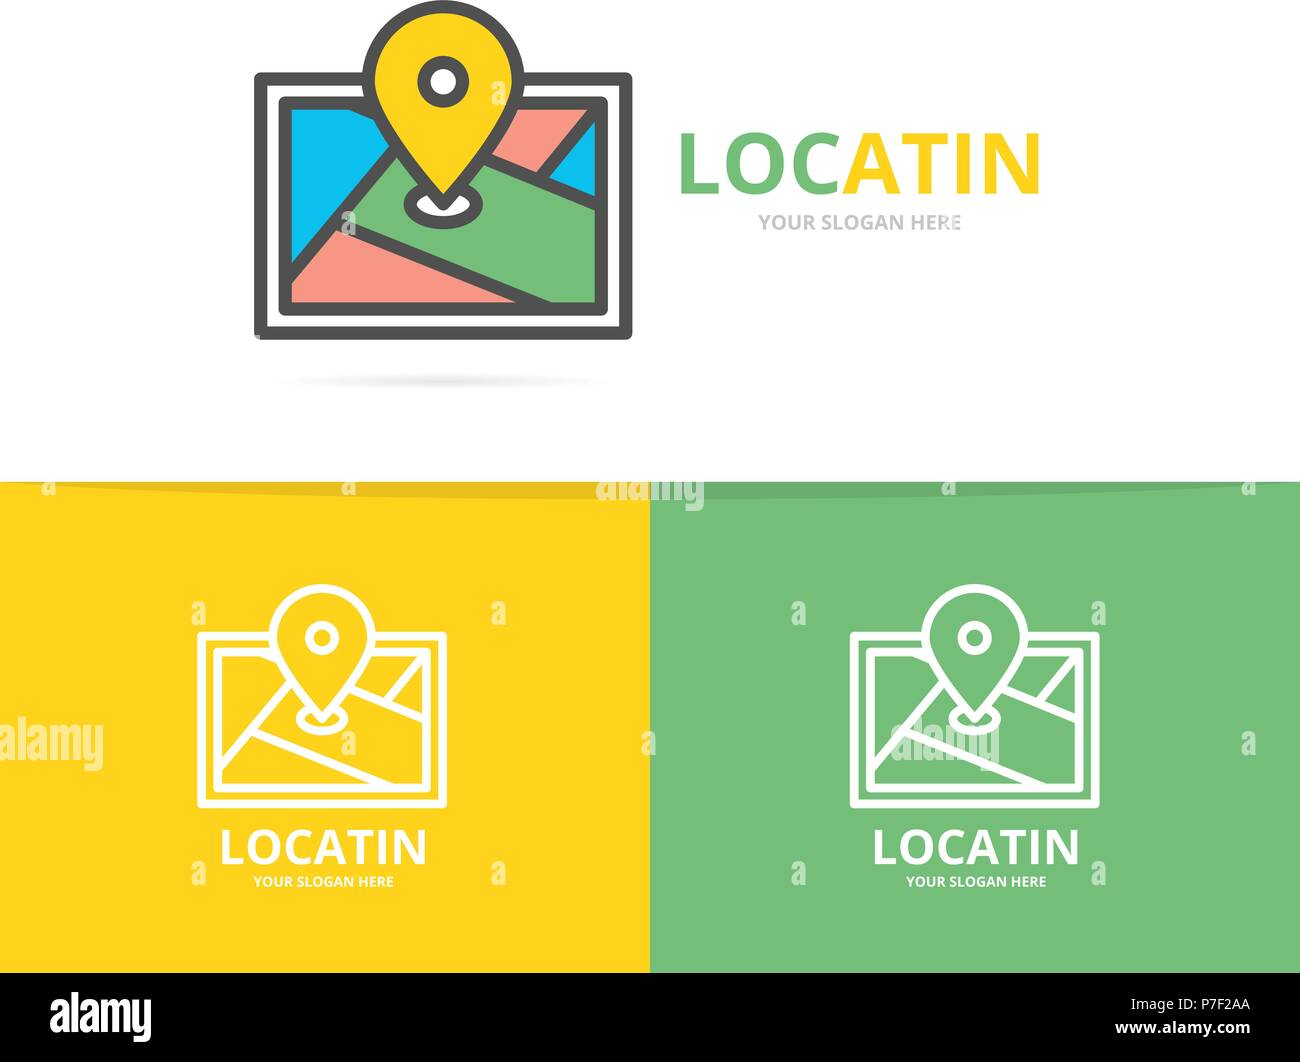 Gps Location Stock Photos Gps Location Stock Images Alamy